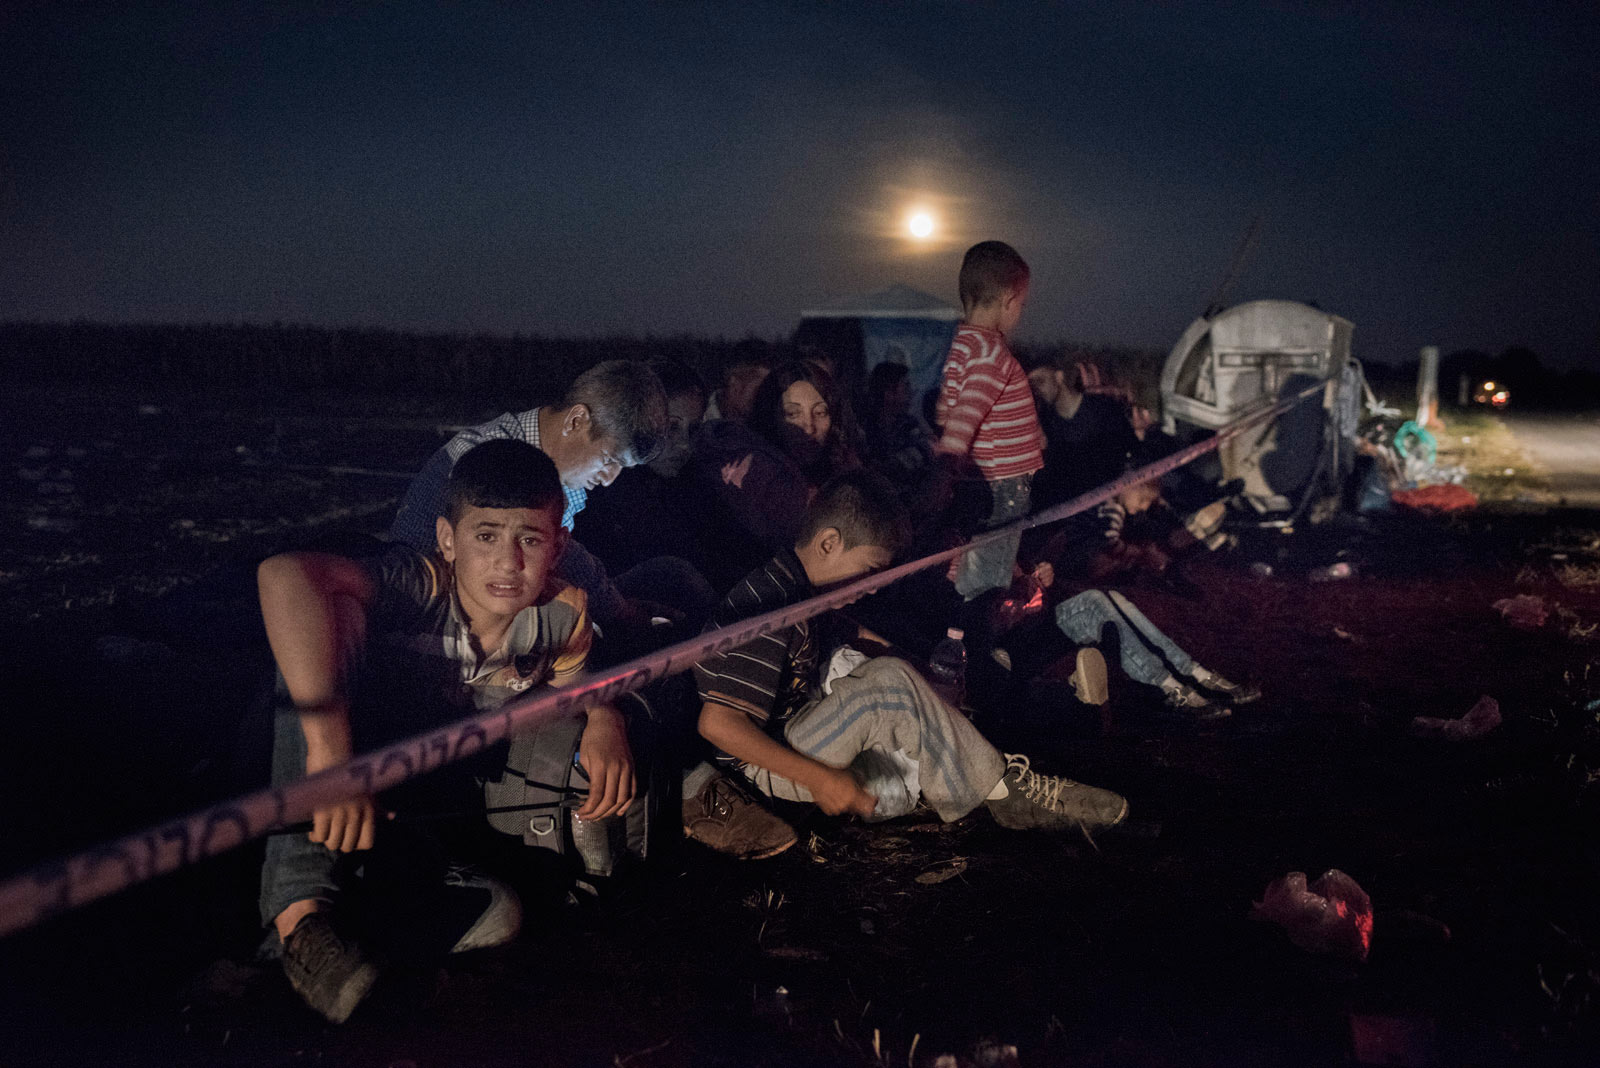 Migrants wait behind a police line for Hungarian authorities to register their arrival in the European Union.                               Roszke, Hungary, Aug. 29, 2015.